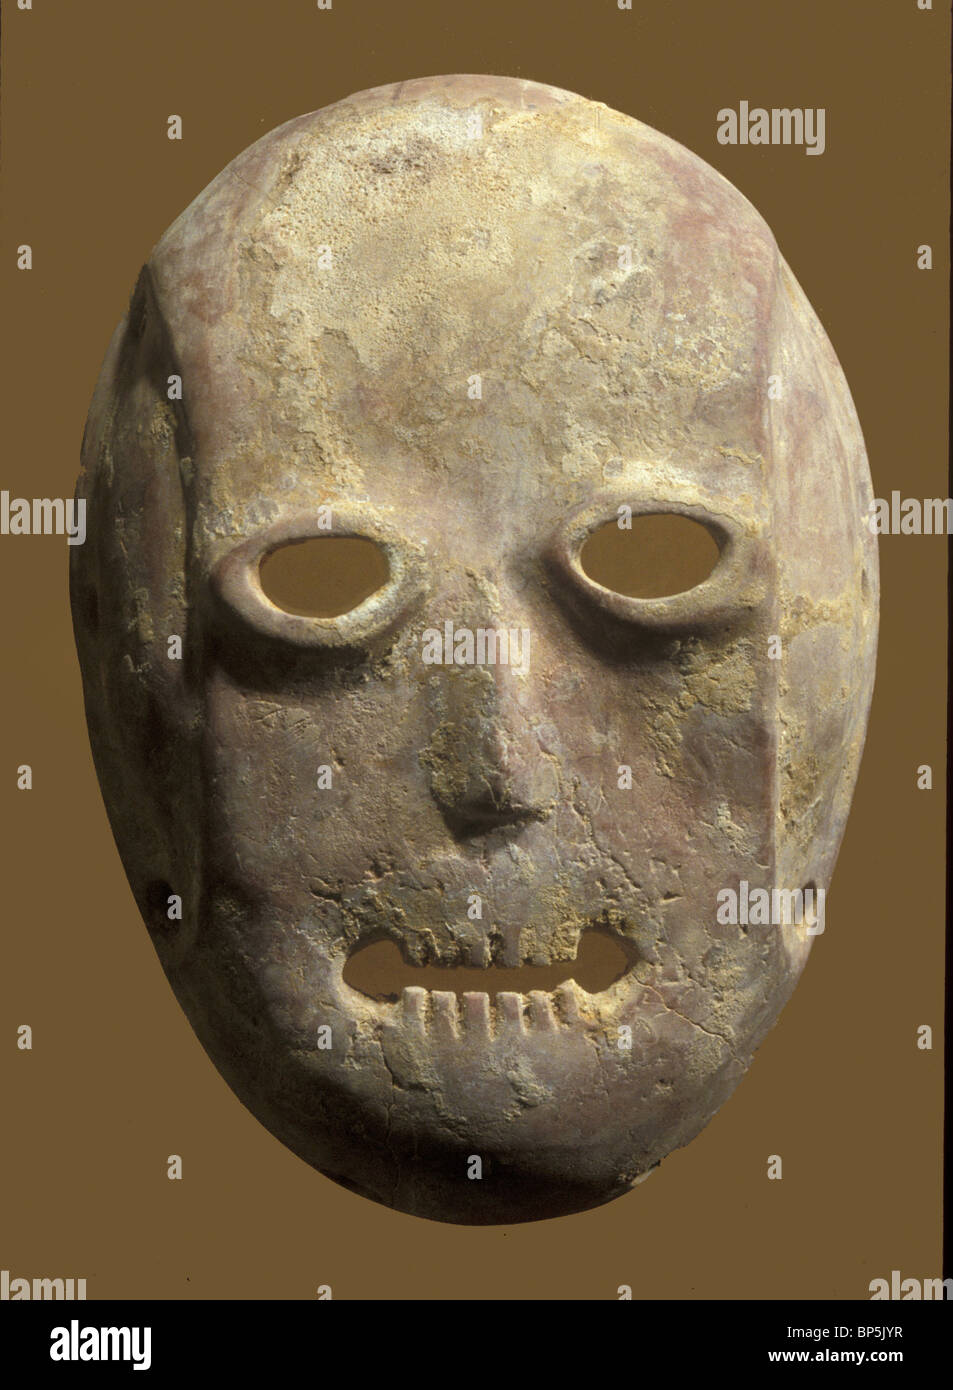 4376. NEOLITHIC PERIOD STONE CARVED CULT MASK - Stock Image